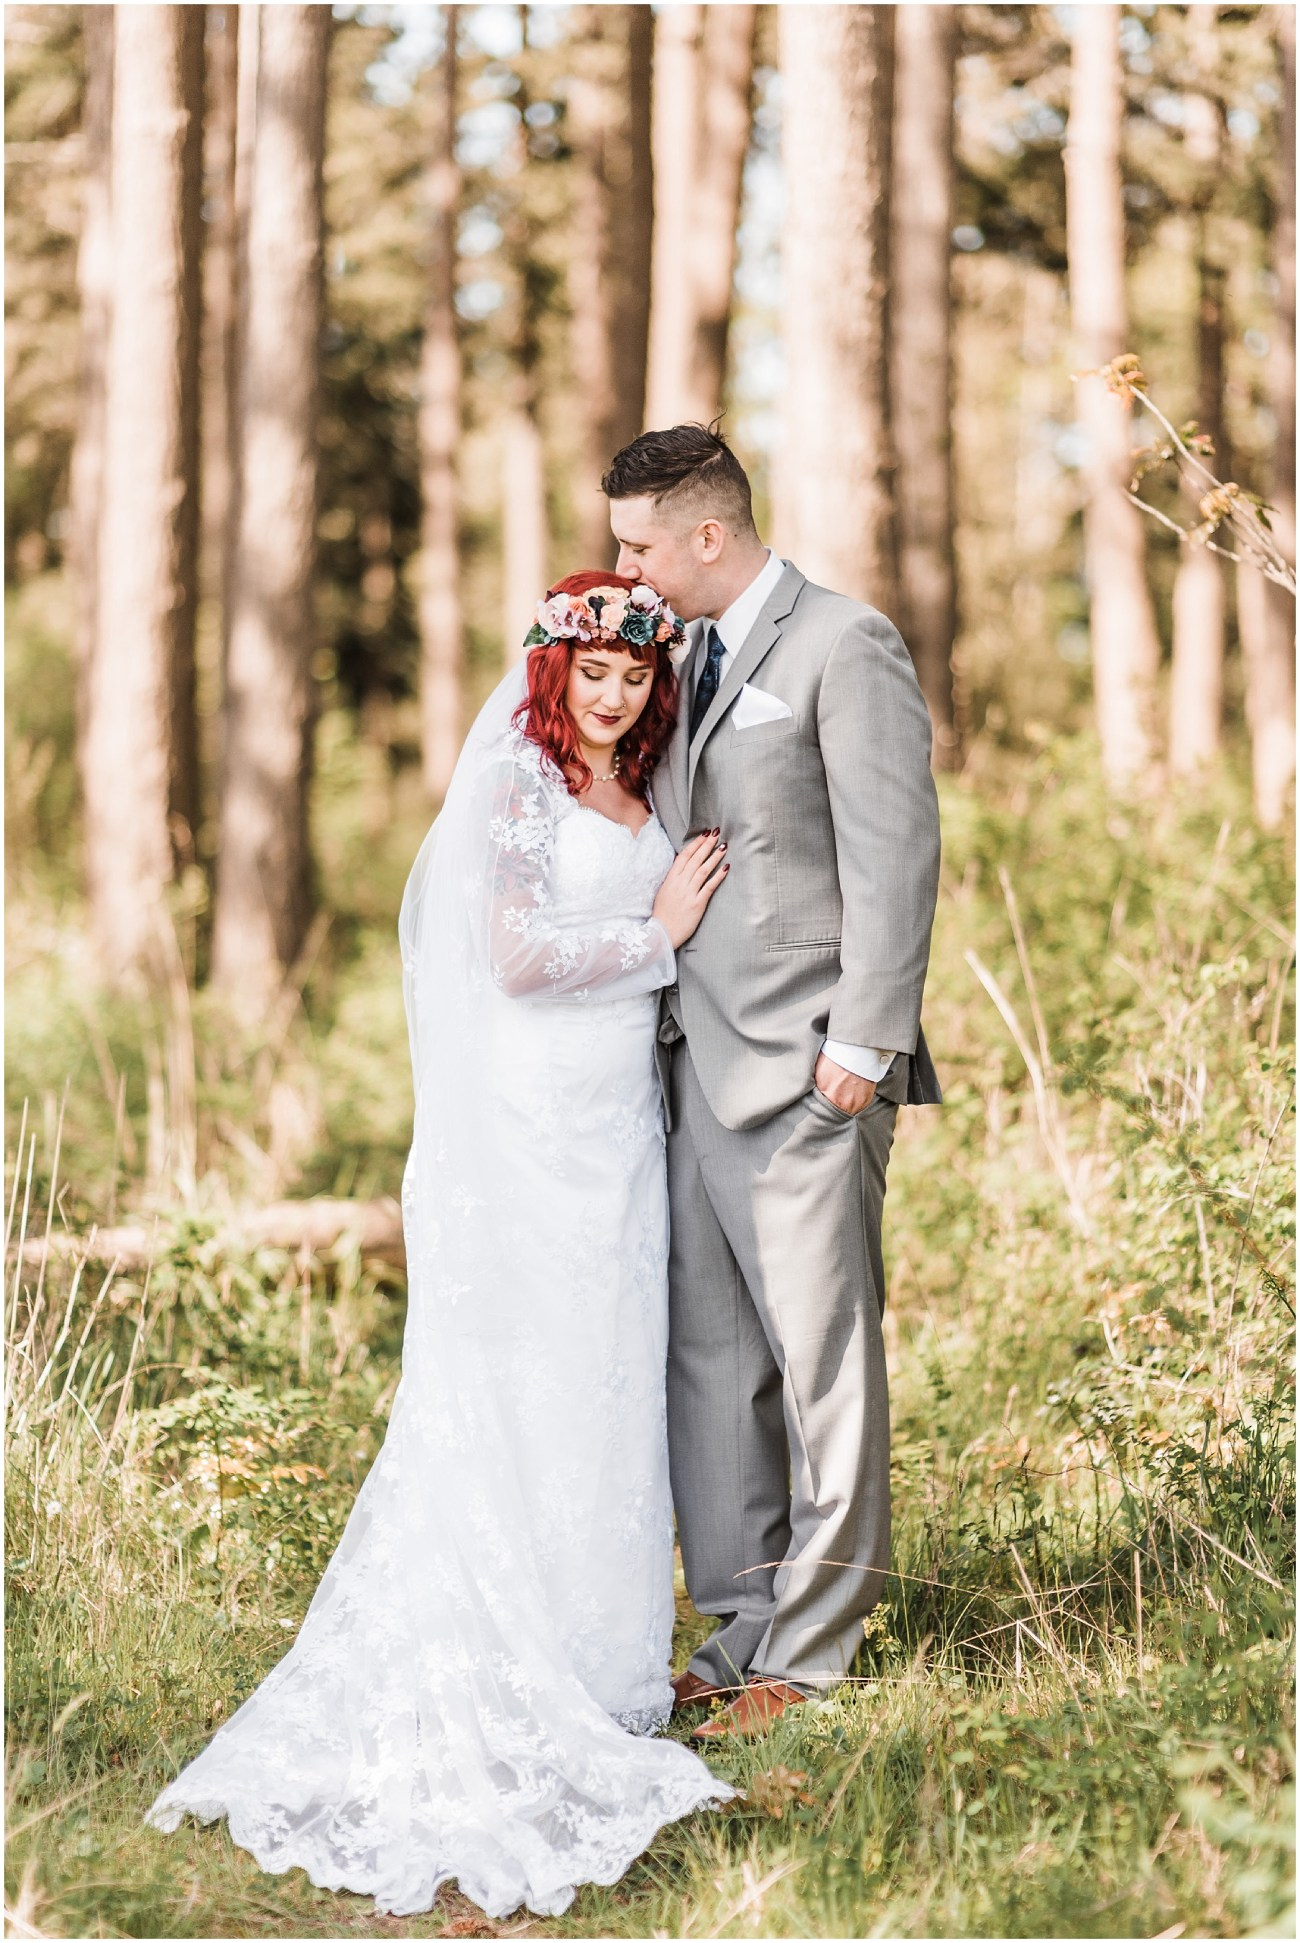 Photo of a bride and groom in a sunny, seaside forest in Bayview, WA